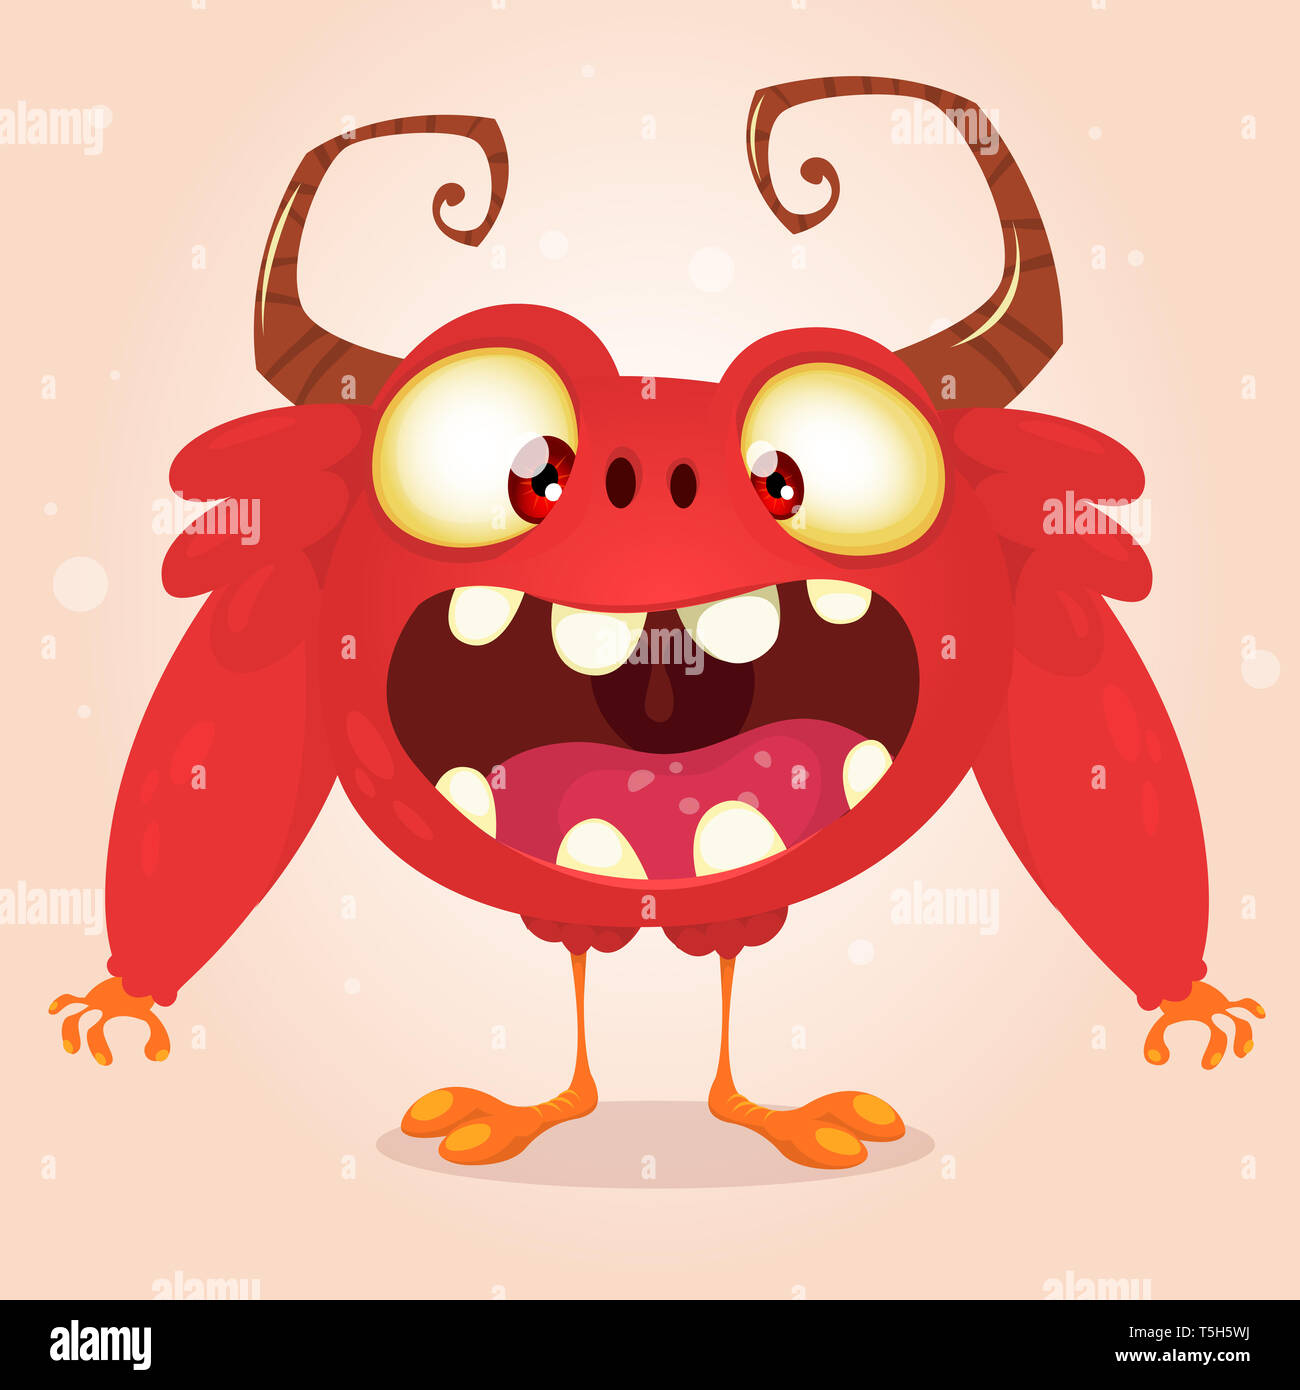 Happy cartoon screaming monster character design with big horns. Vector illustration for Halloween - Stock Image